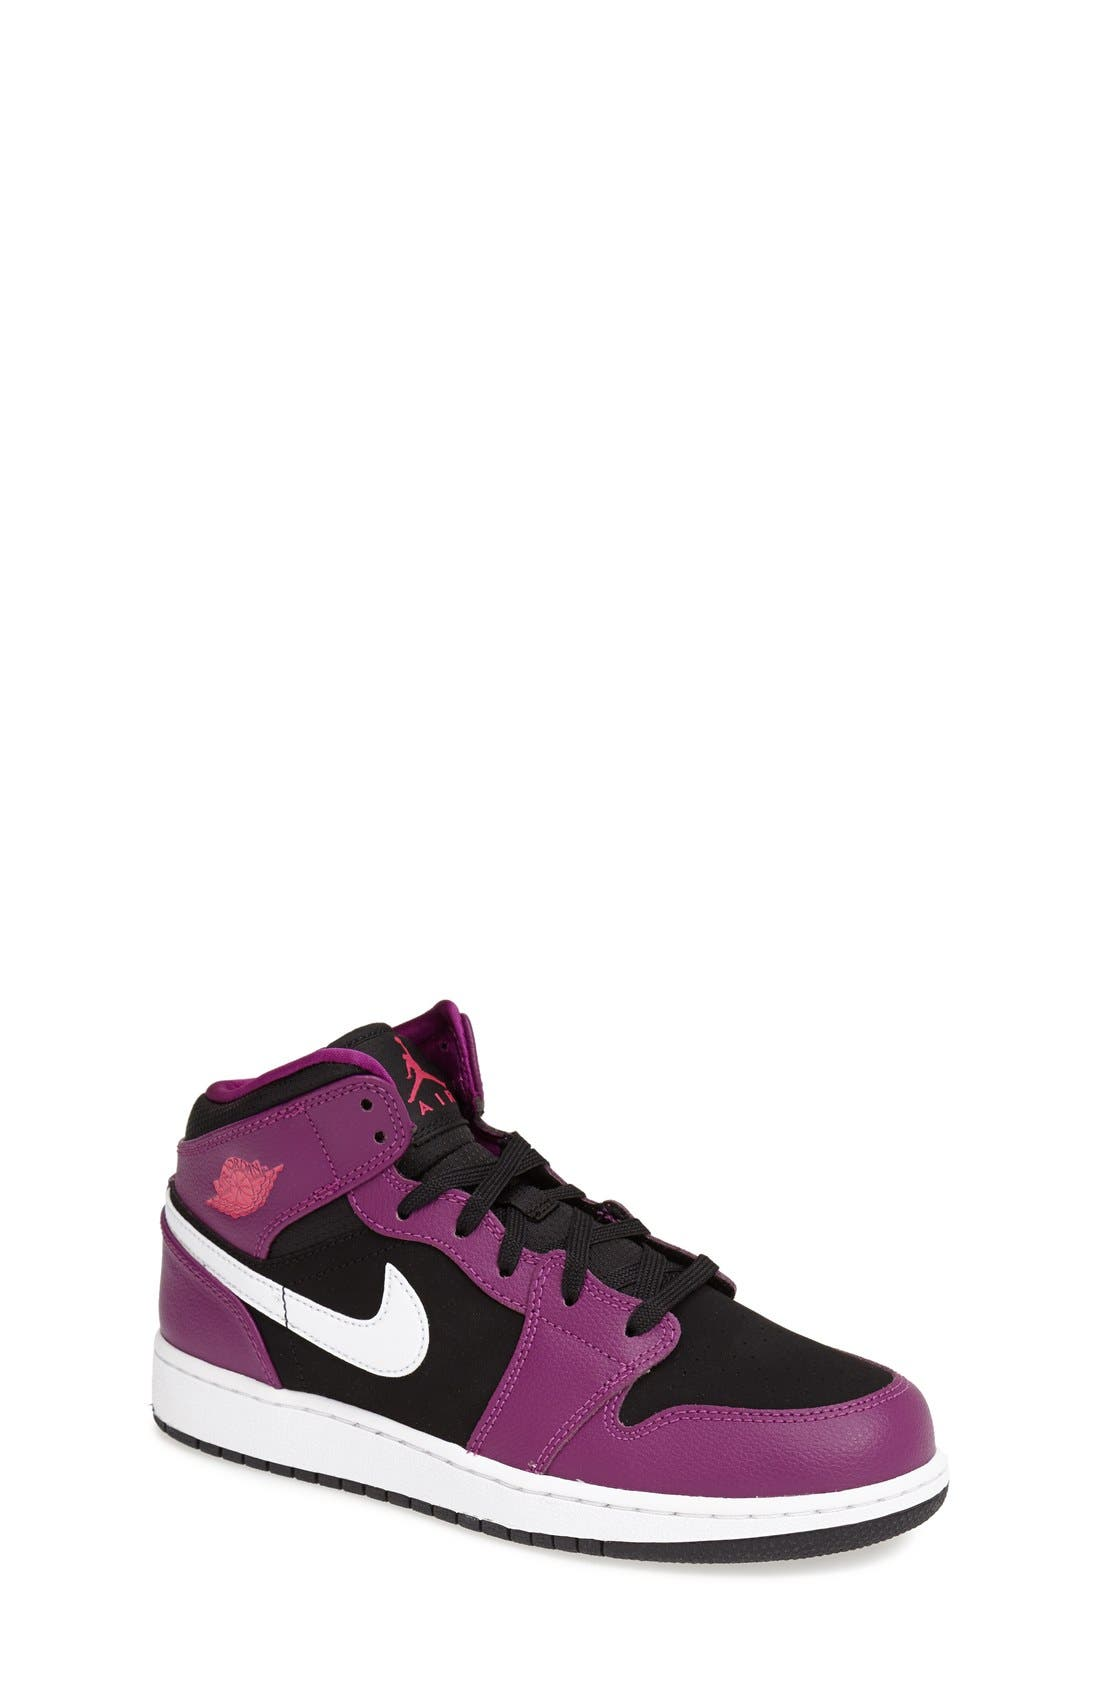 Nike 'Air Jordan 1 Mid' Sneaker,                             Main thumbnail 5, color,